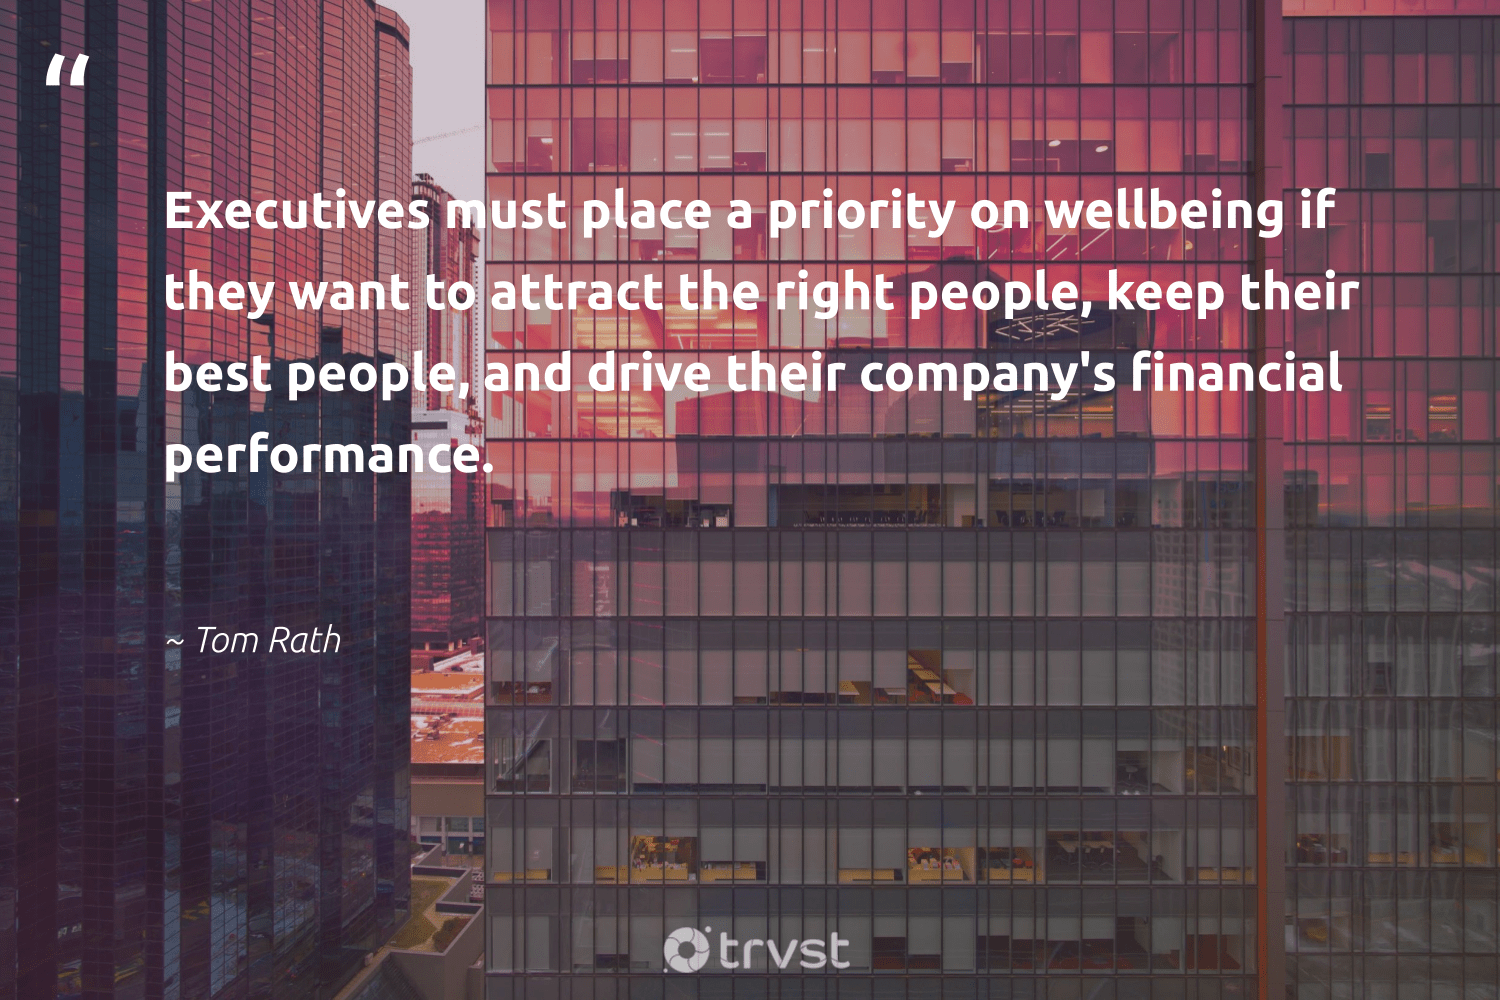 """""""Executives must place a priority on wellbeing if they want to attract the right people, keep their best people, and drive their company's financial performance.""""  - Tom Rath #trvst #quotes #wellbeing #wellness #sharedresponsibility #nevergiveup #ecoconscious #healthyliving #betterplanet #mindset #gogreen #healthylife"""